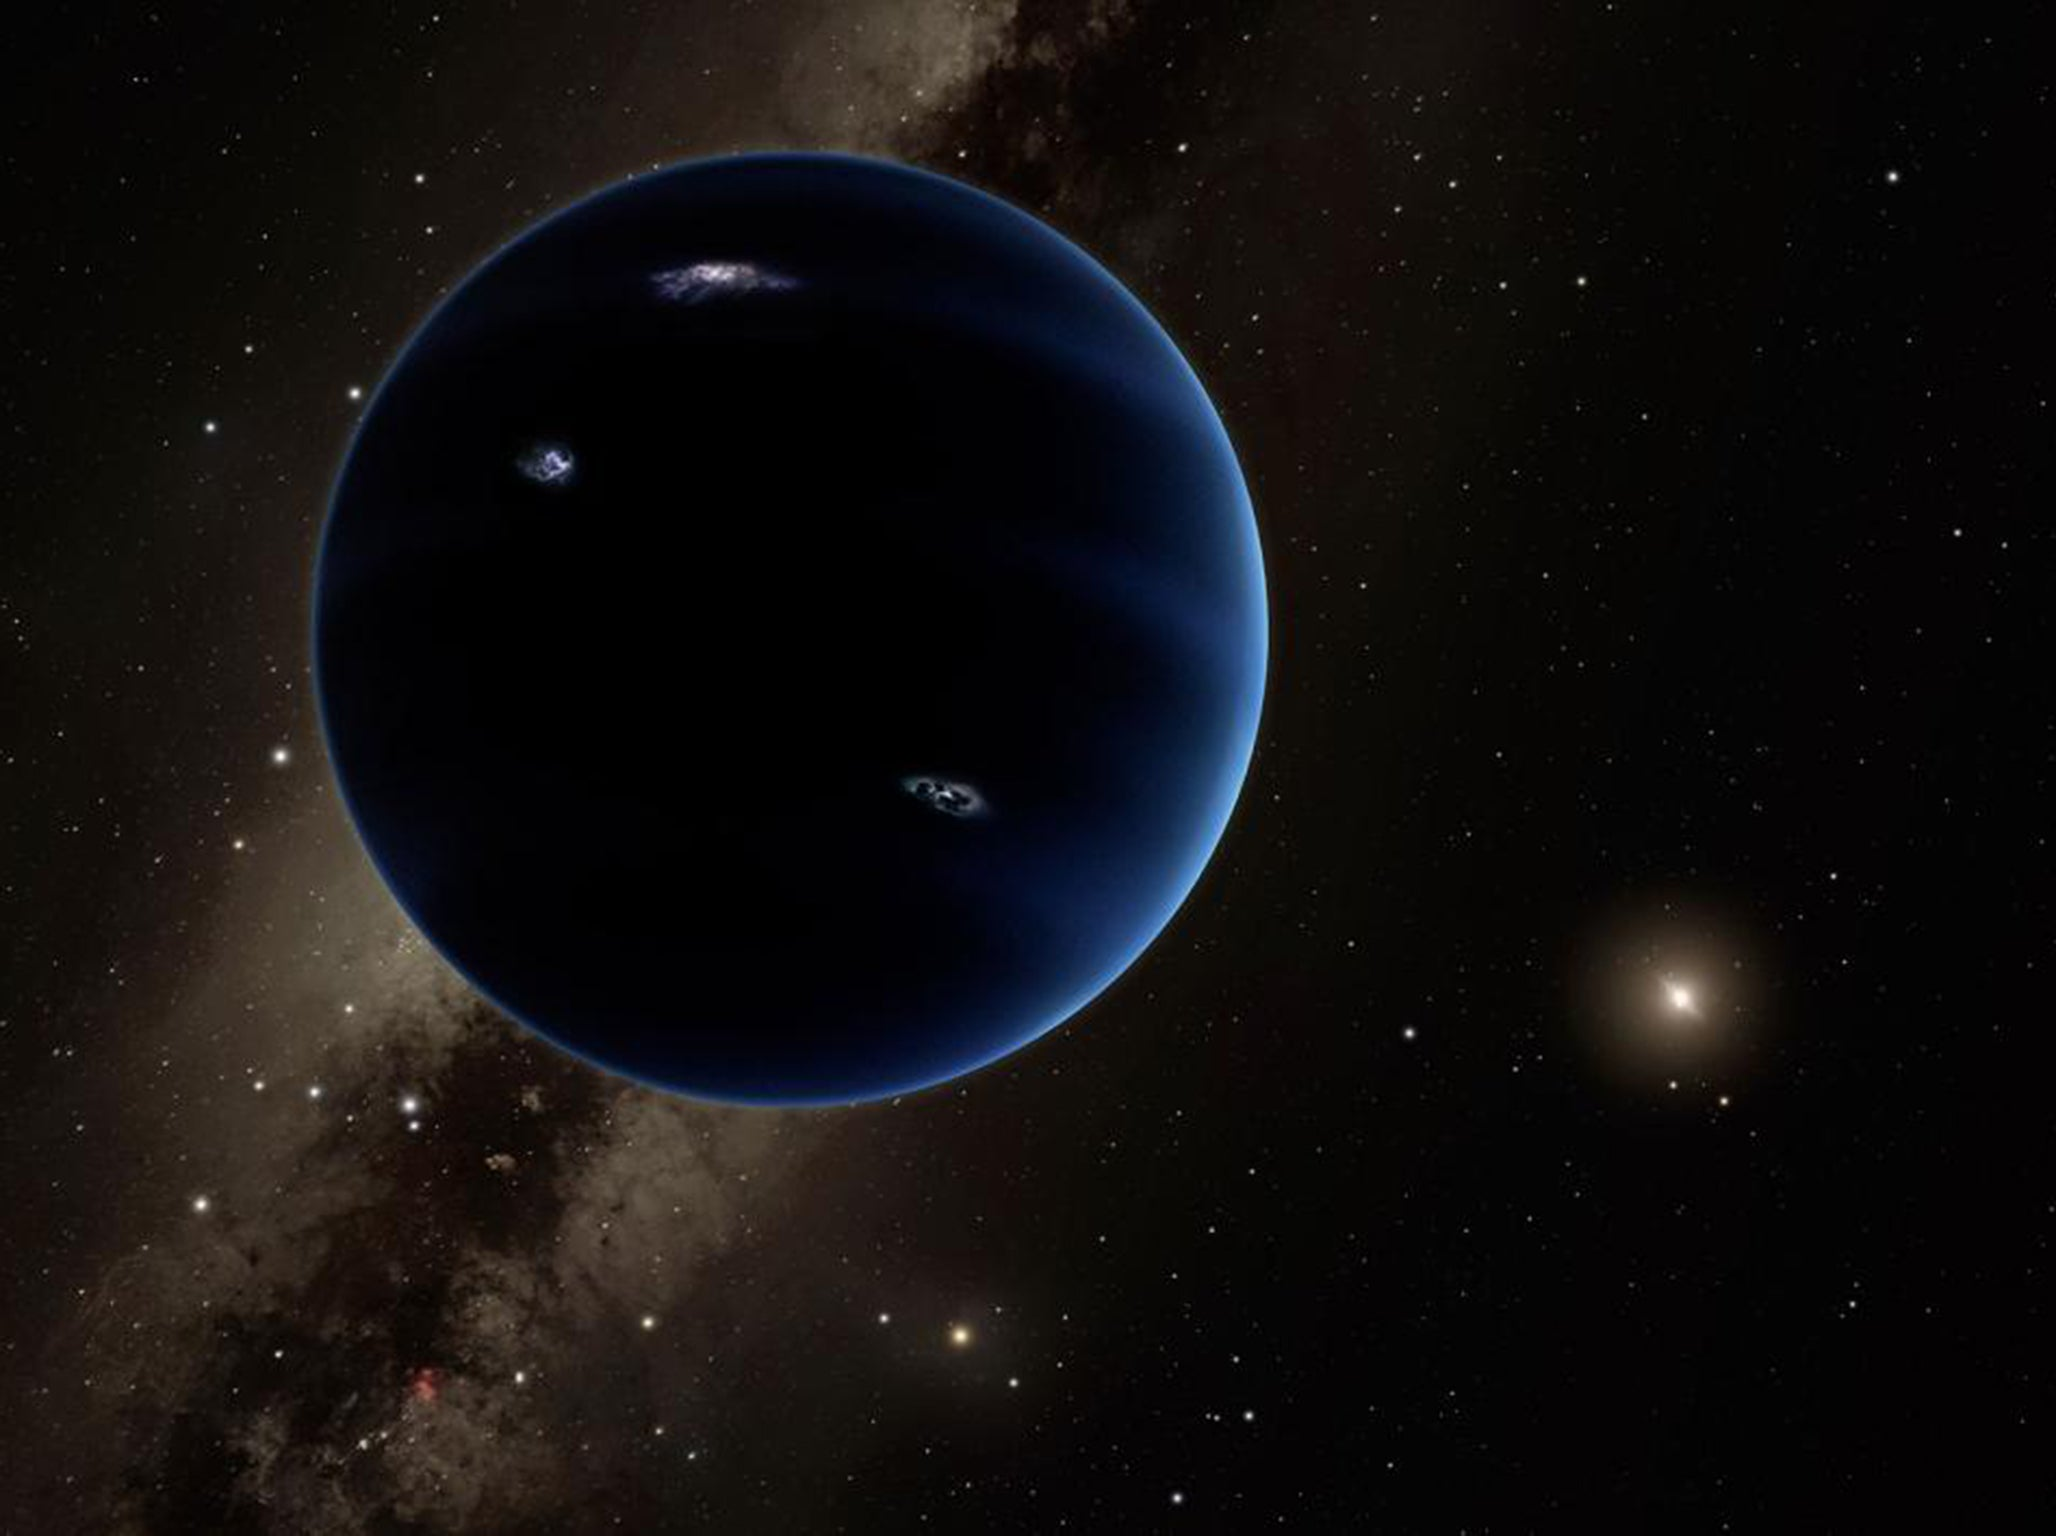 Planet Nine: Mysterious planet is to blame for mass extinctions of life on Earth, scientist claims